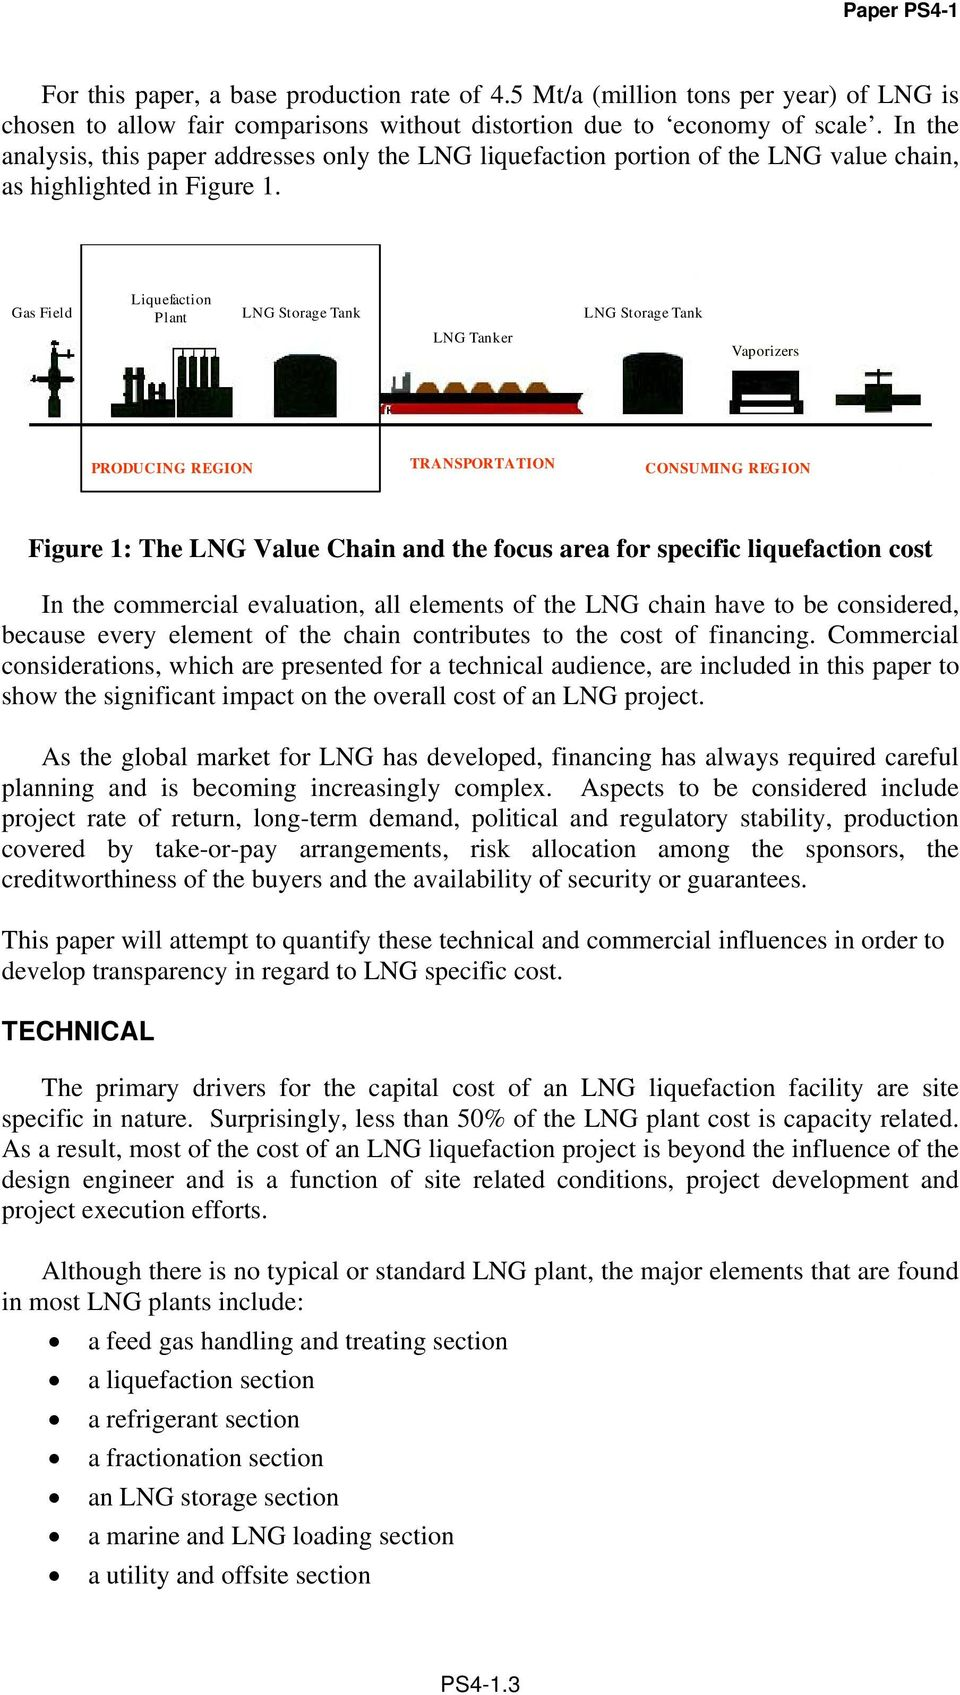 Gas Field Liquefaction Plant LNG Storage Tank LNG Tanker LNG Storage Tank Vaporizers PRODUCING REGION TRANSPORTATION CONSUMING REGION Figure 1: The LNG Value Chain and the focus area for specific